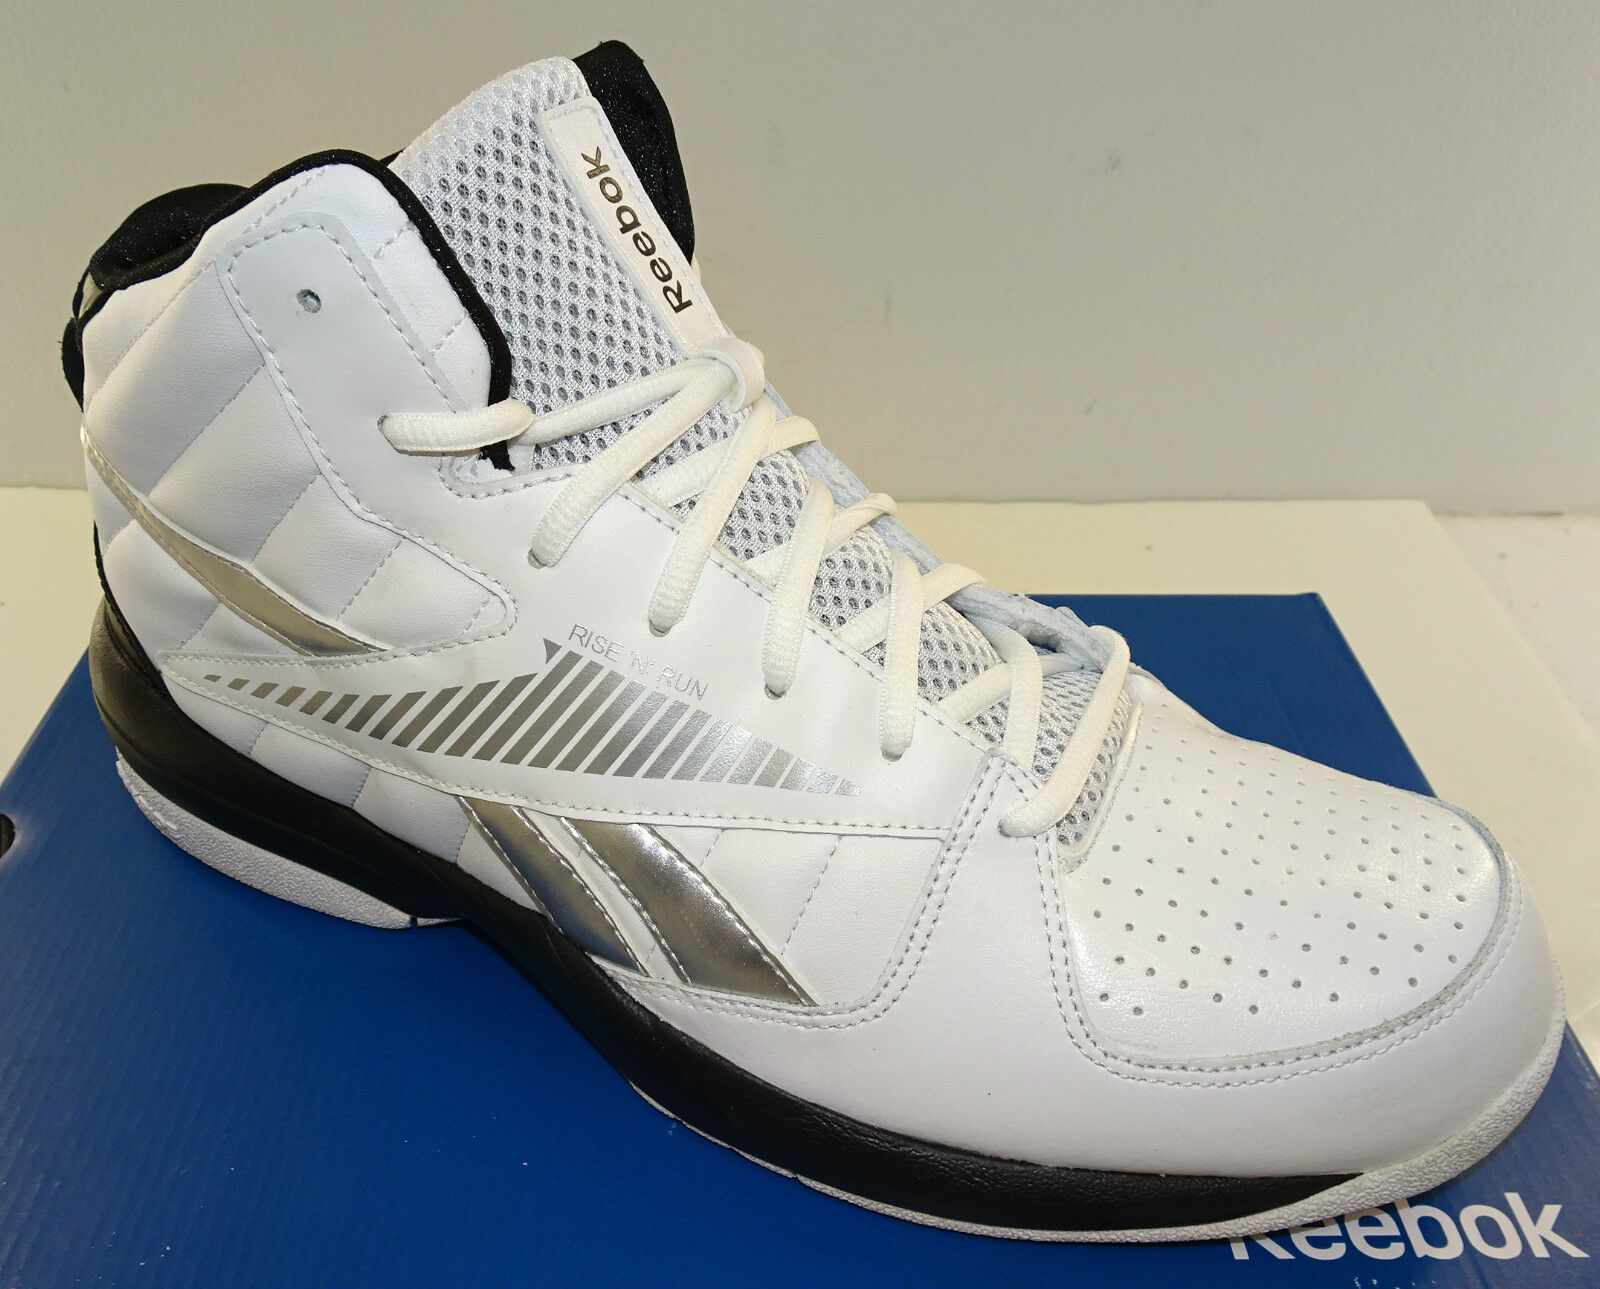 REEBOK Rise   Run Men s Basketball Shoe J90407 White NWD Size 7 NO BOX 1 of  11Only 1 available ... c415622bc